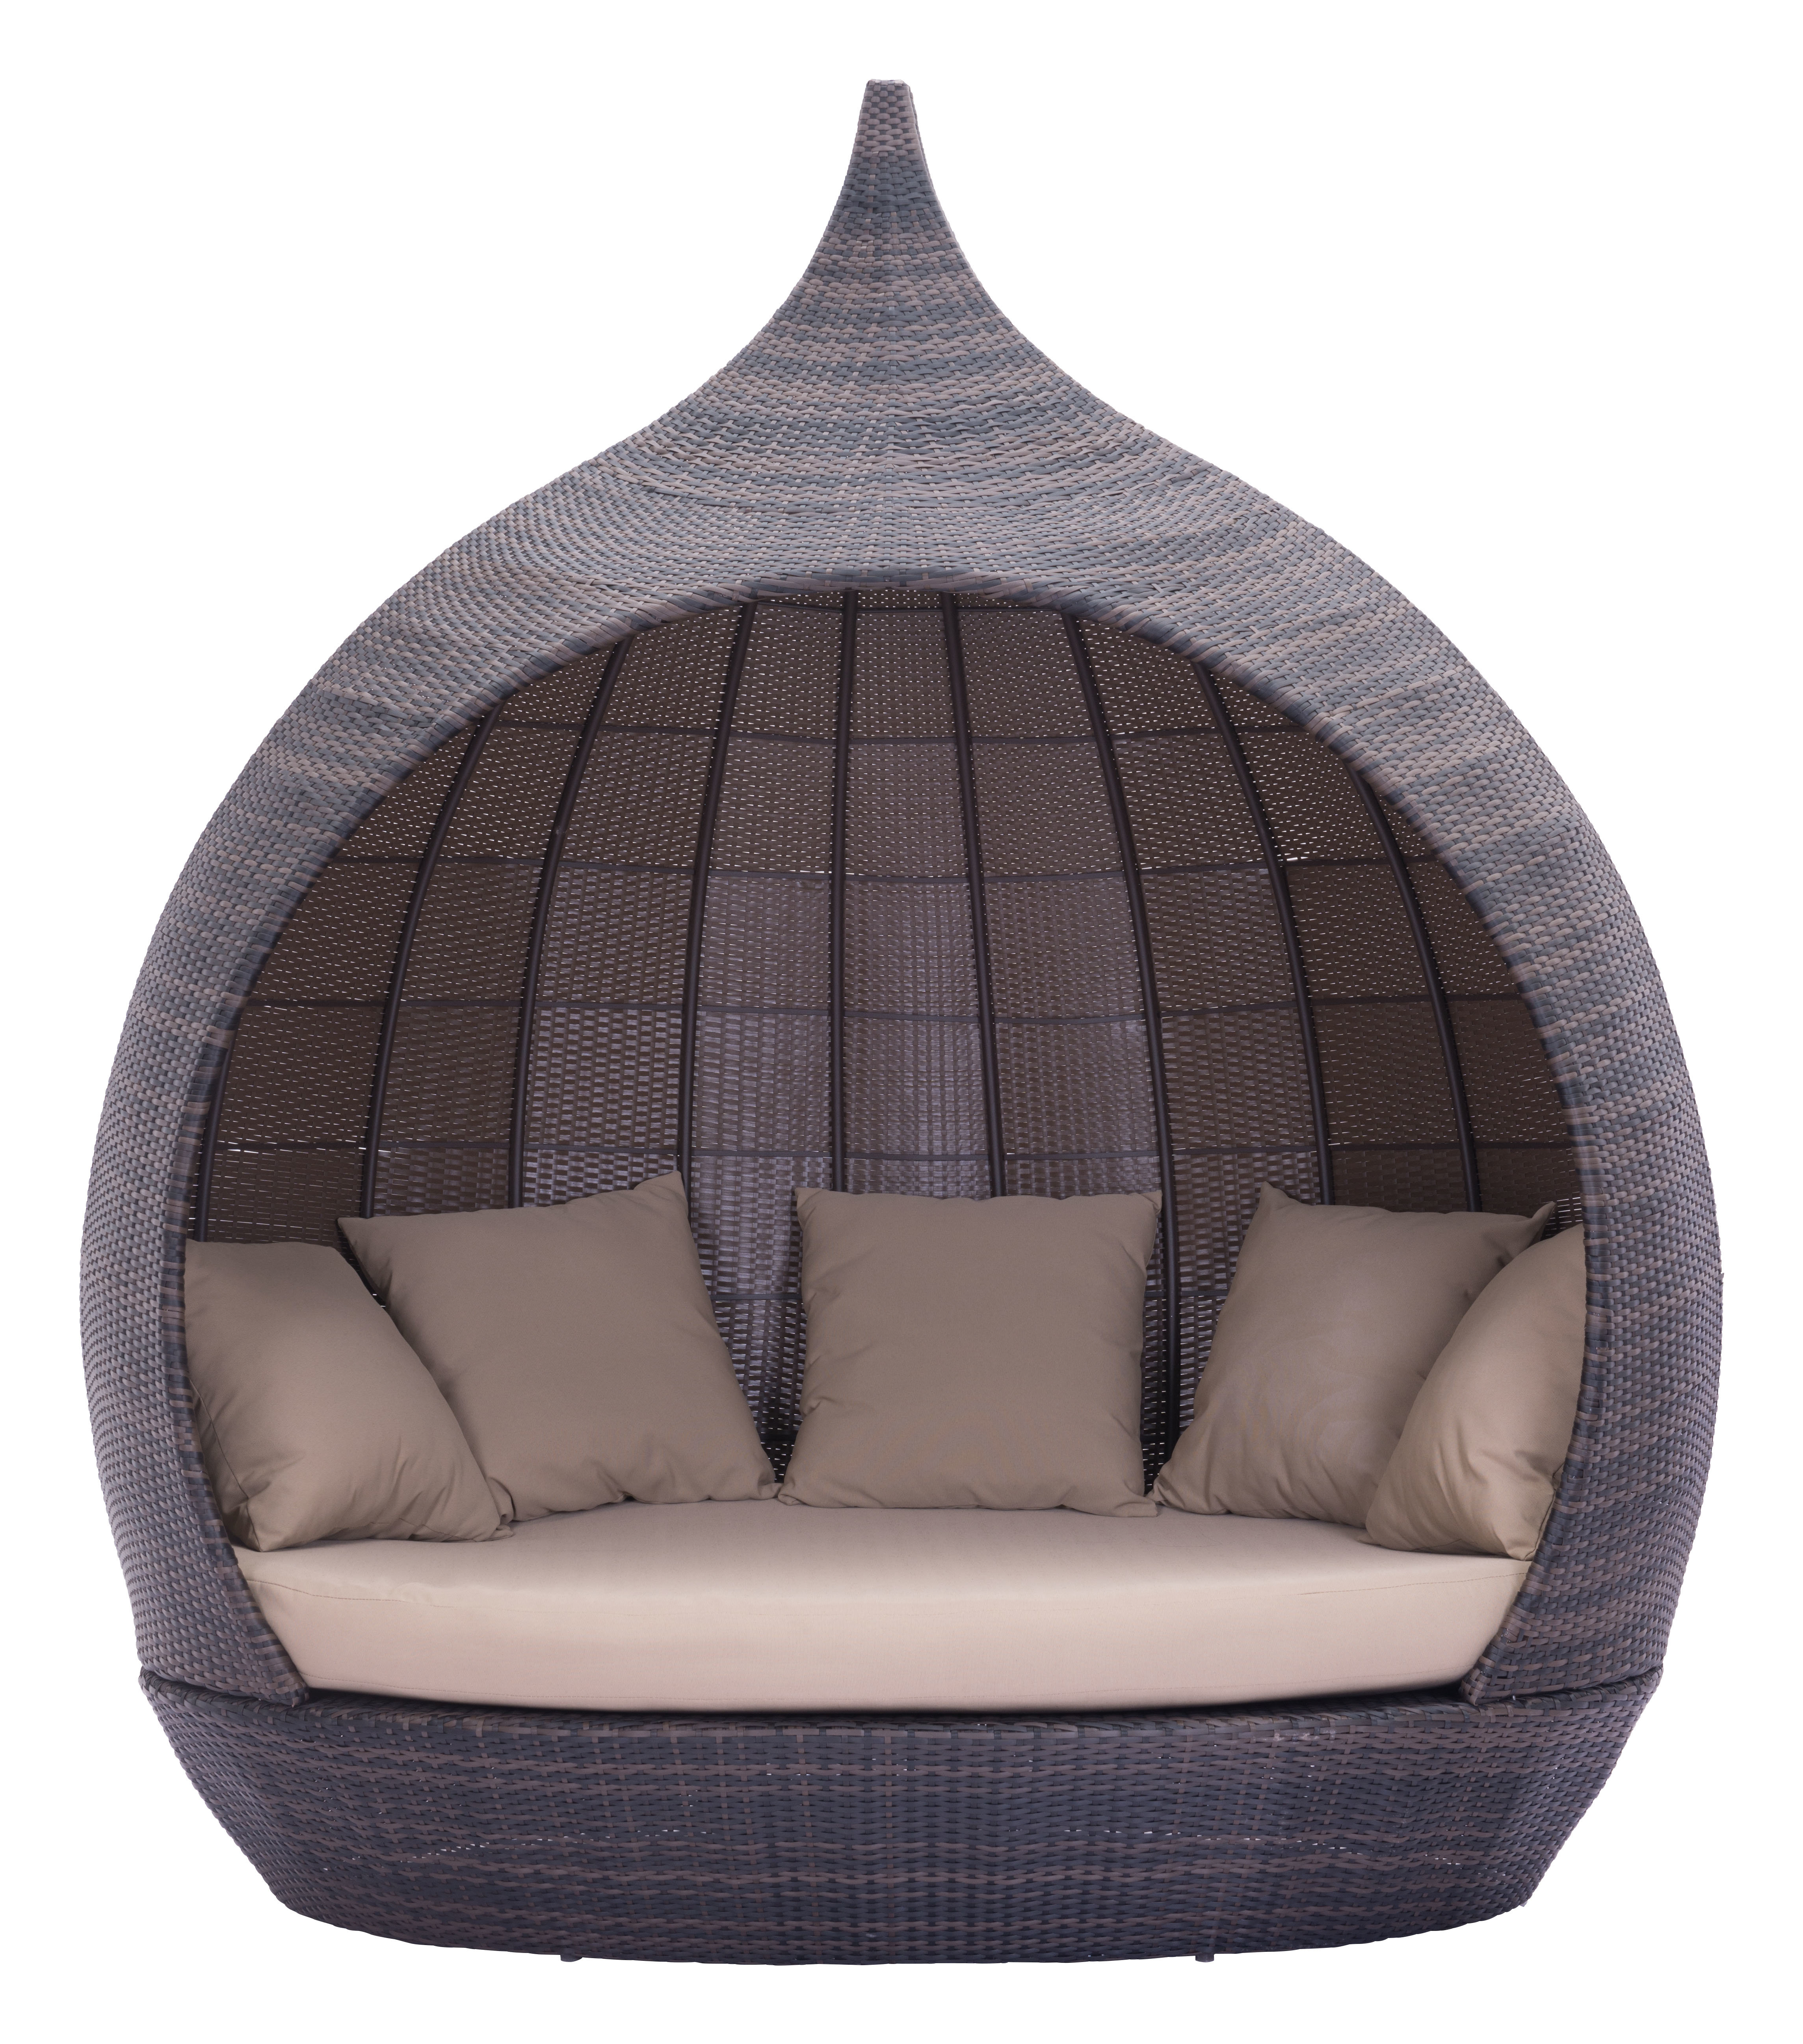 Trendy Brennon Cube Patio Daybeds With Cushions Throughout Hatley Daybed With Cushions (View 6 of 25)